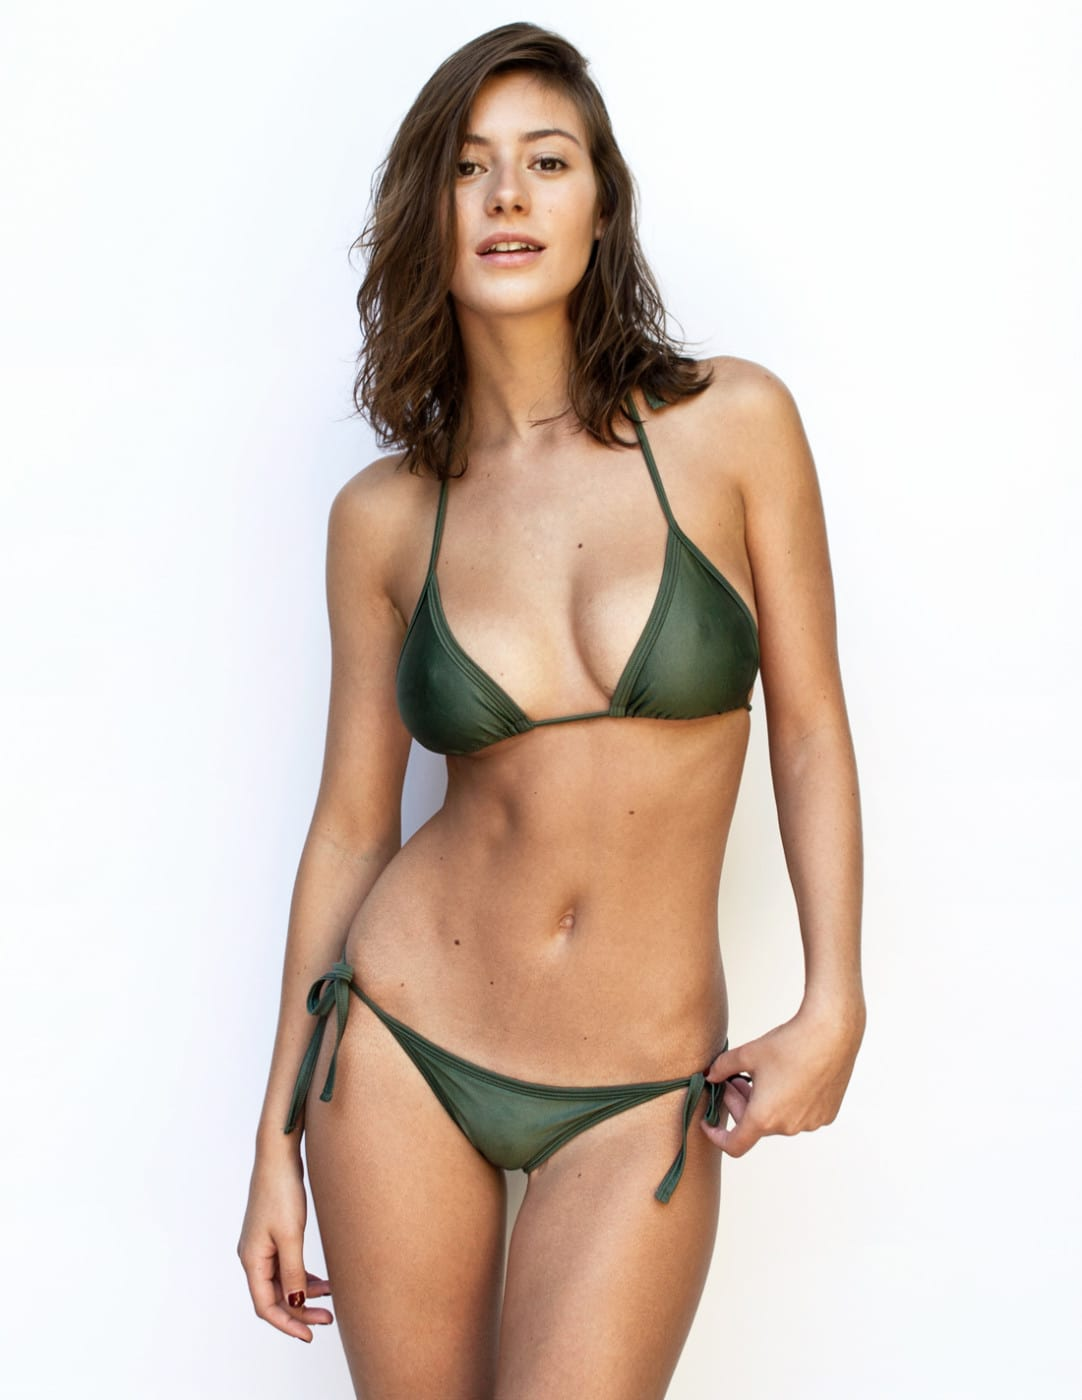 2019 Alejandra Guilmant nudes (64 photos), Sexy, Paparazzi, Feet, underwear 2006